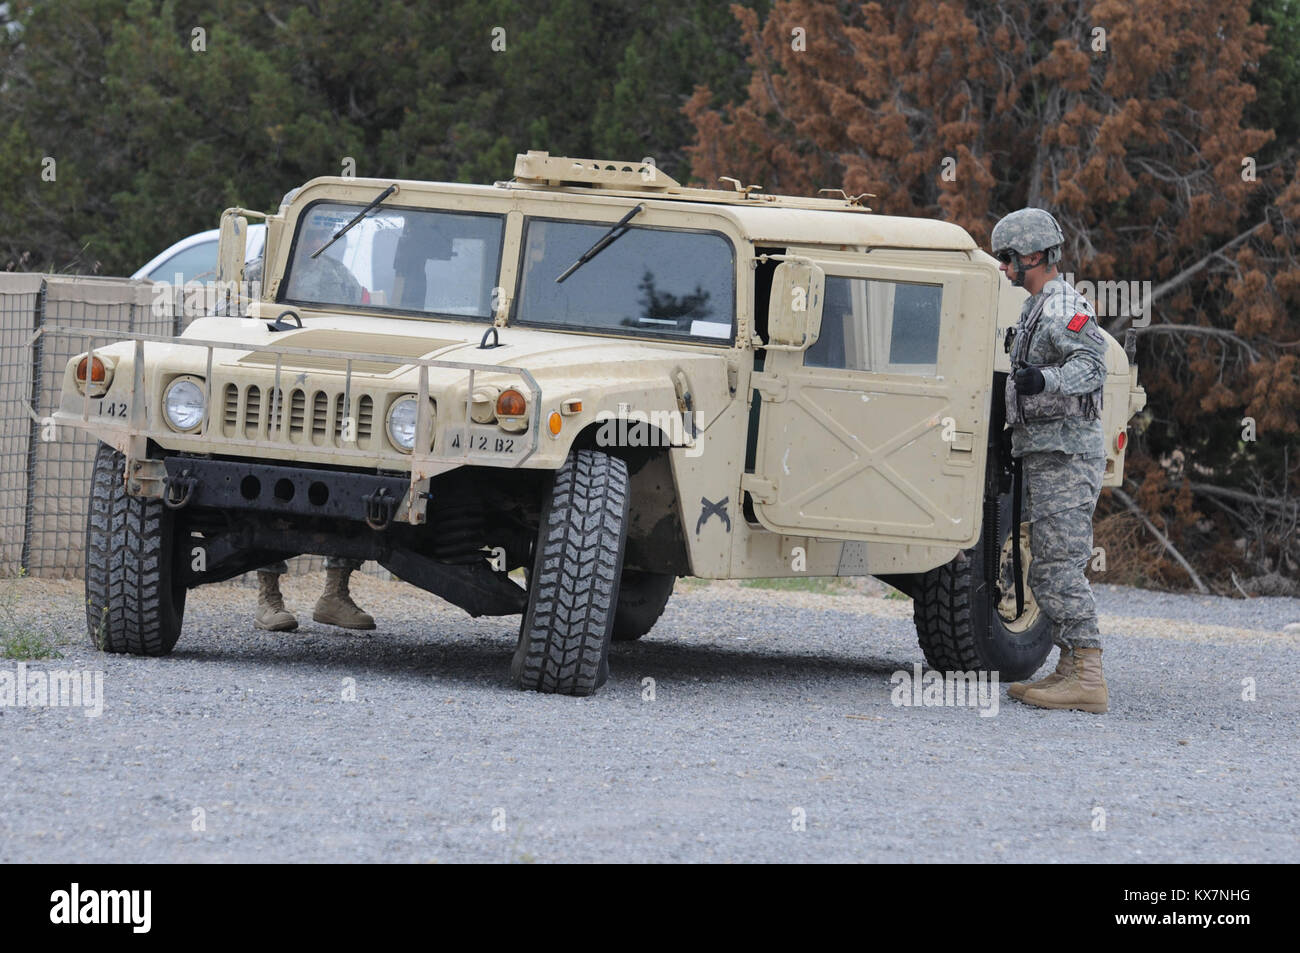 Mobile Strike Force High Resolution Stock Photography And Images Alamy